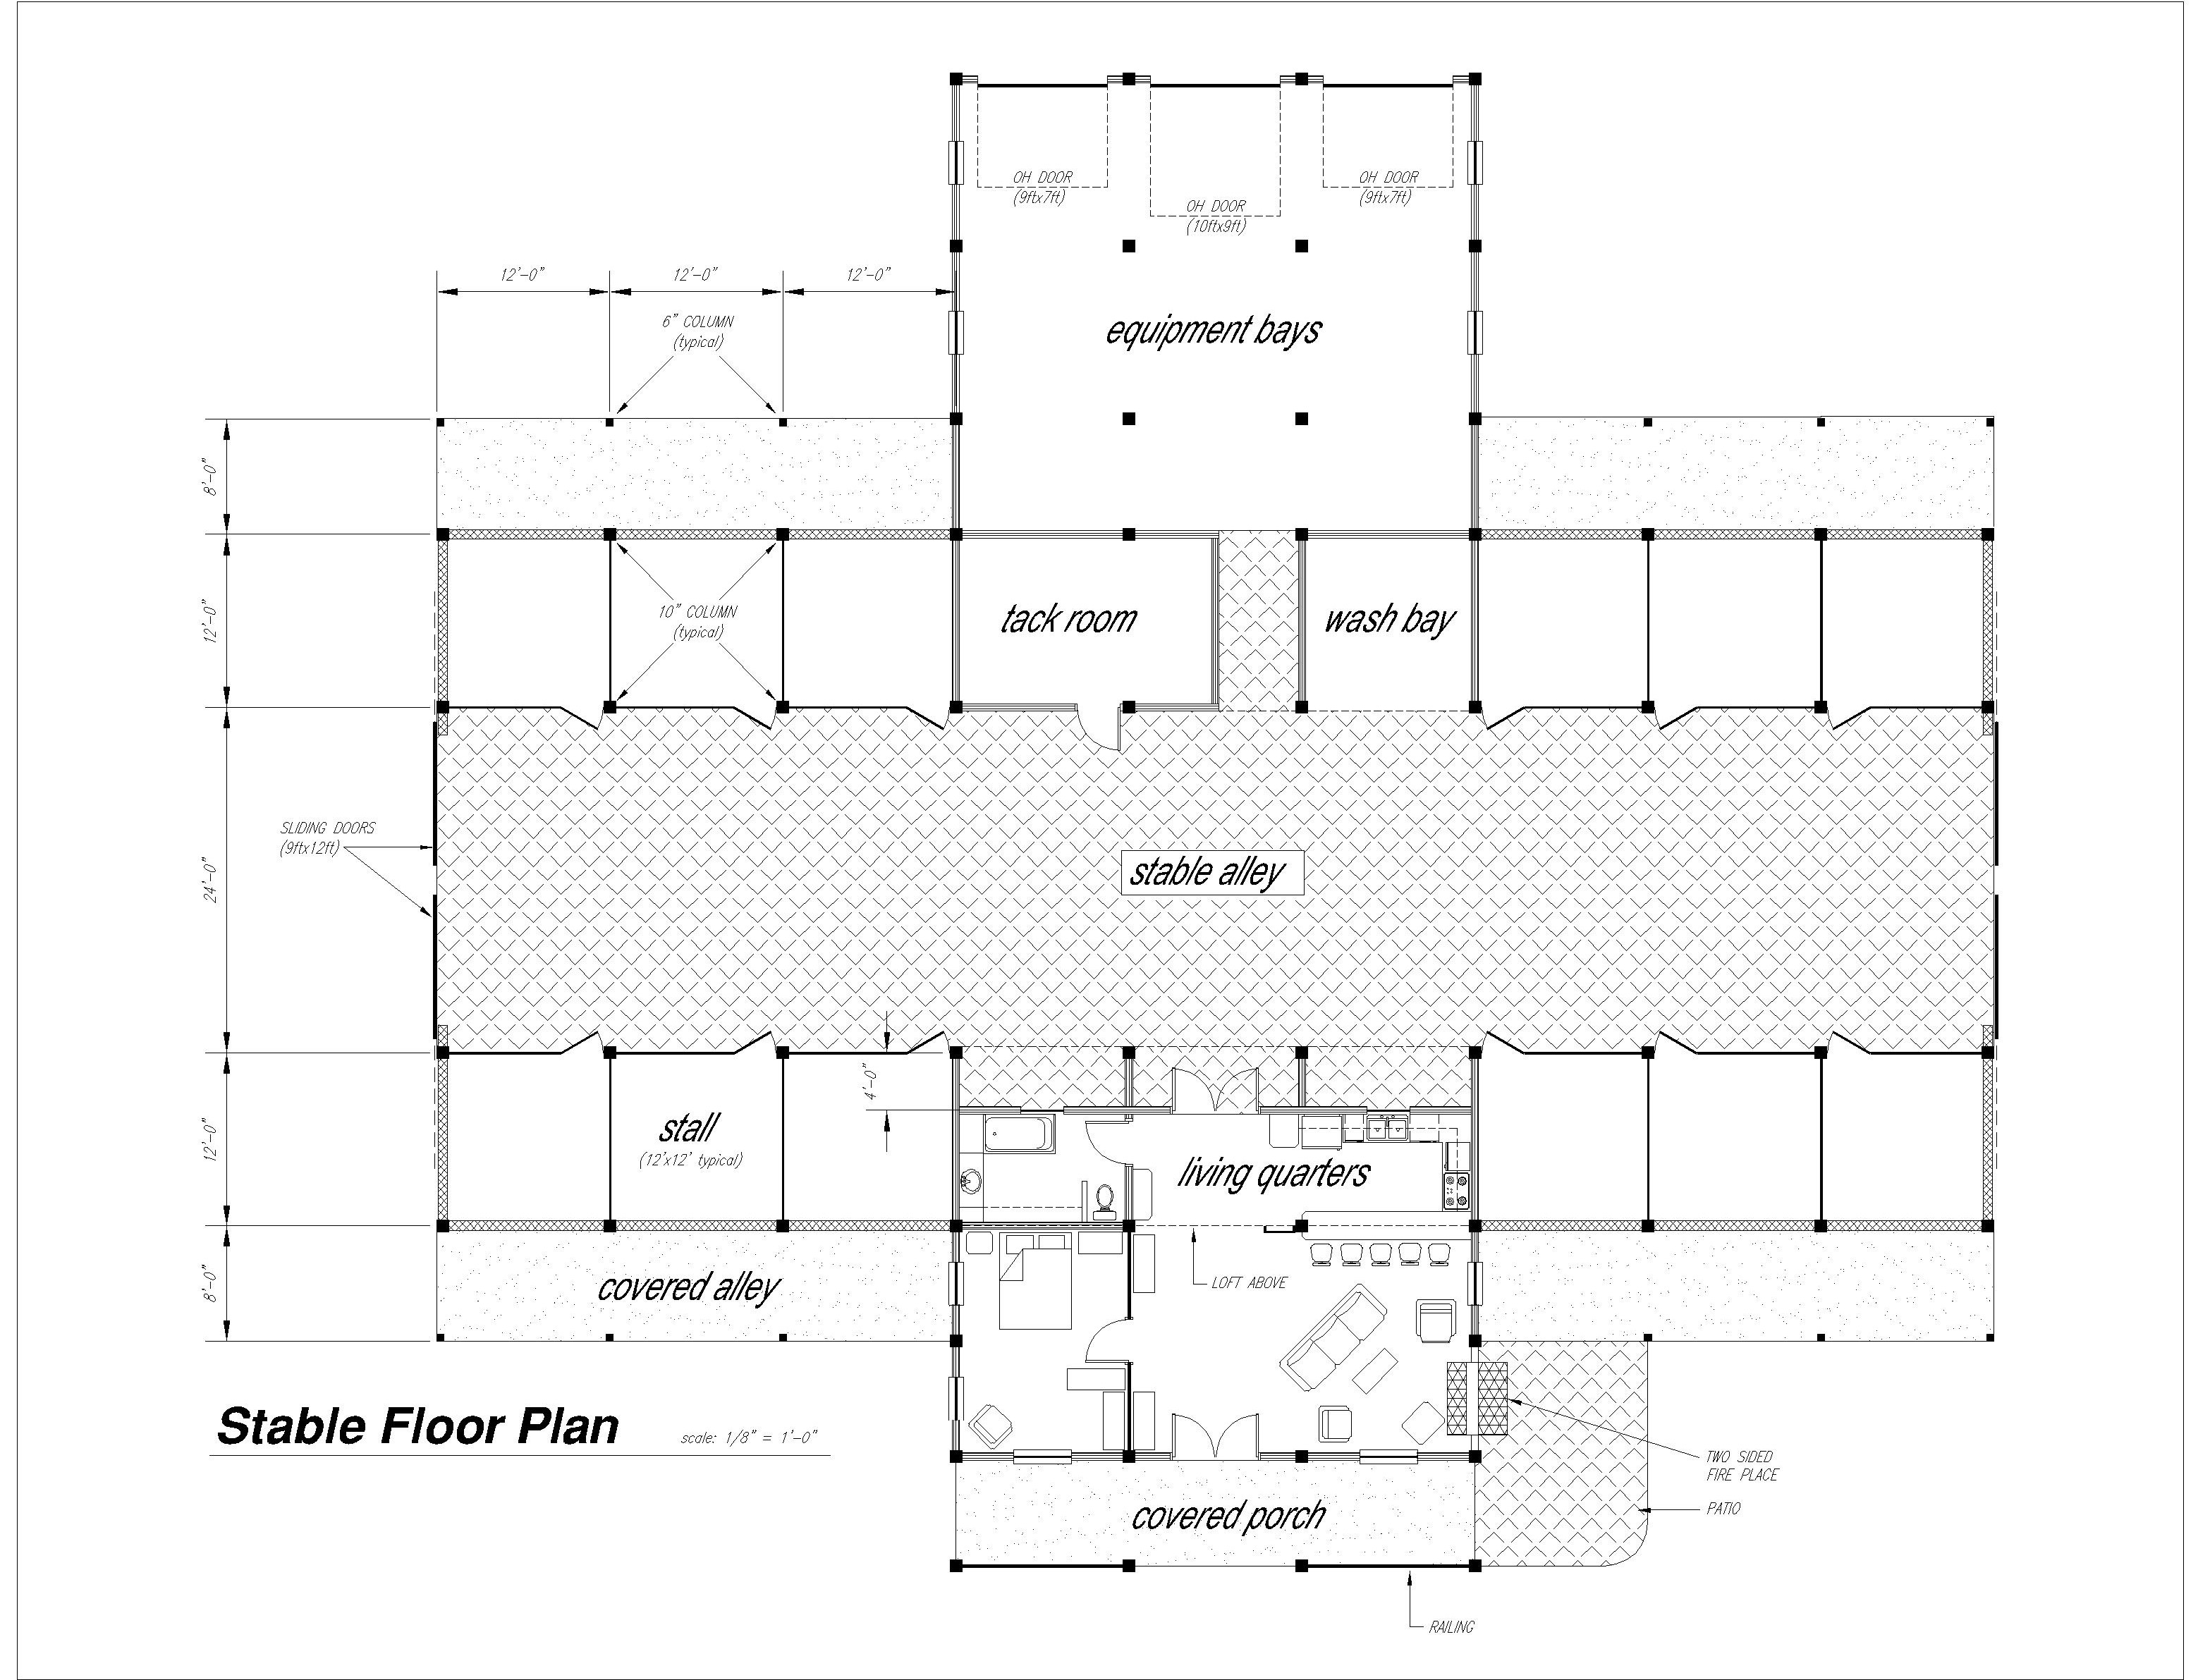 Barn floor plan at riverview stables barn wedding layout for Barn floor plan